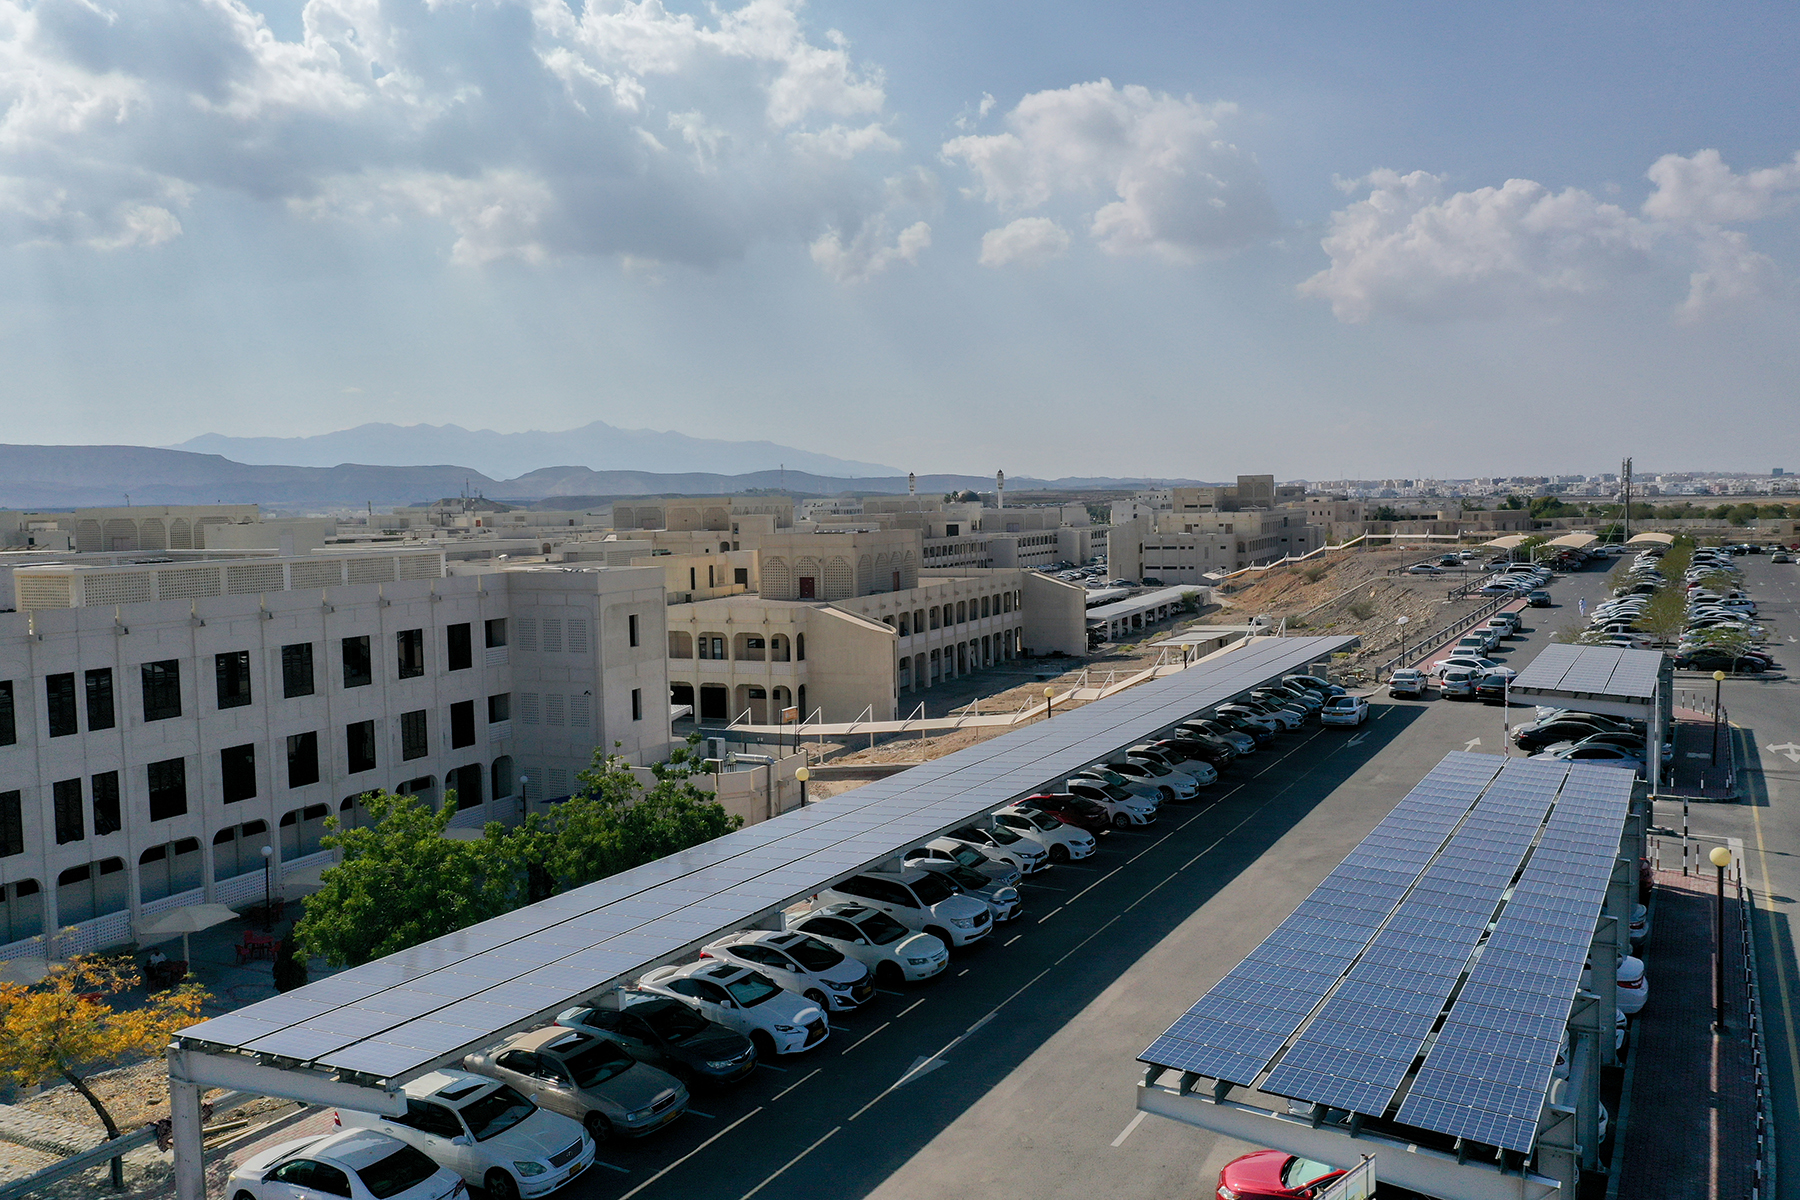 Solar Energy Car Parking at the College of Engineering at Sultan Qaboos University